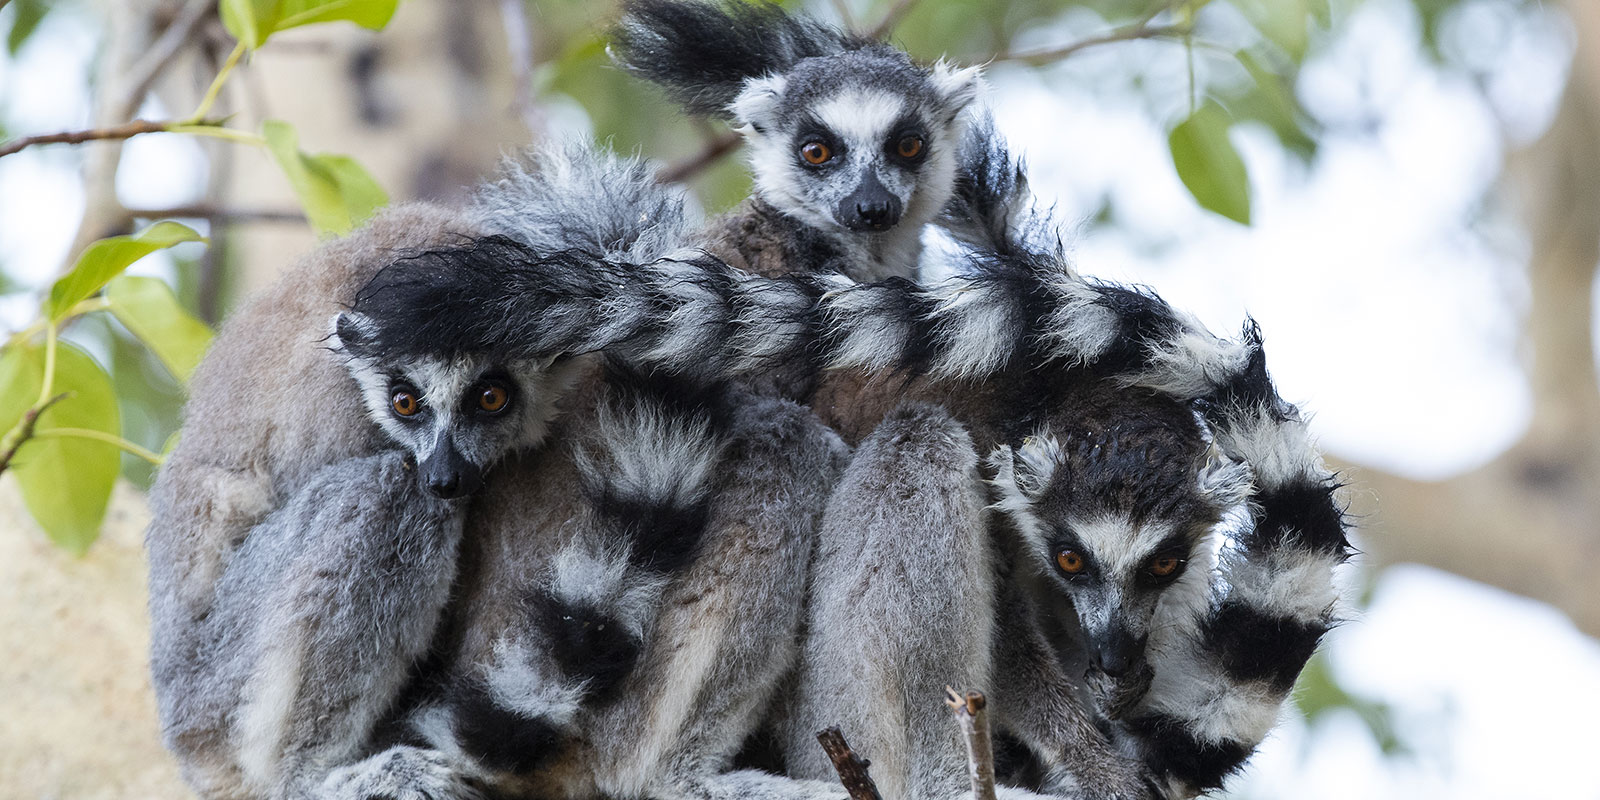 Lemurs clustered on tree branch.